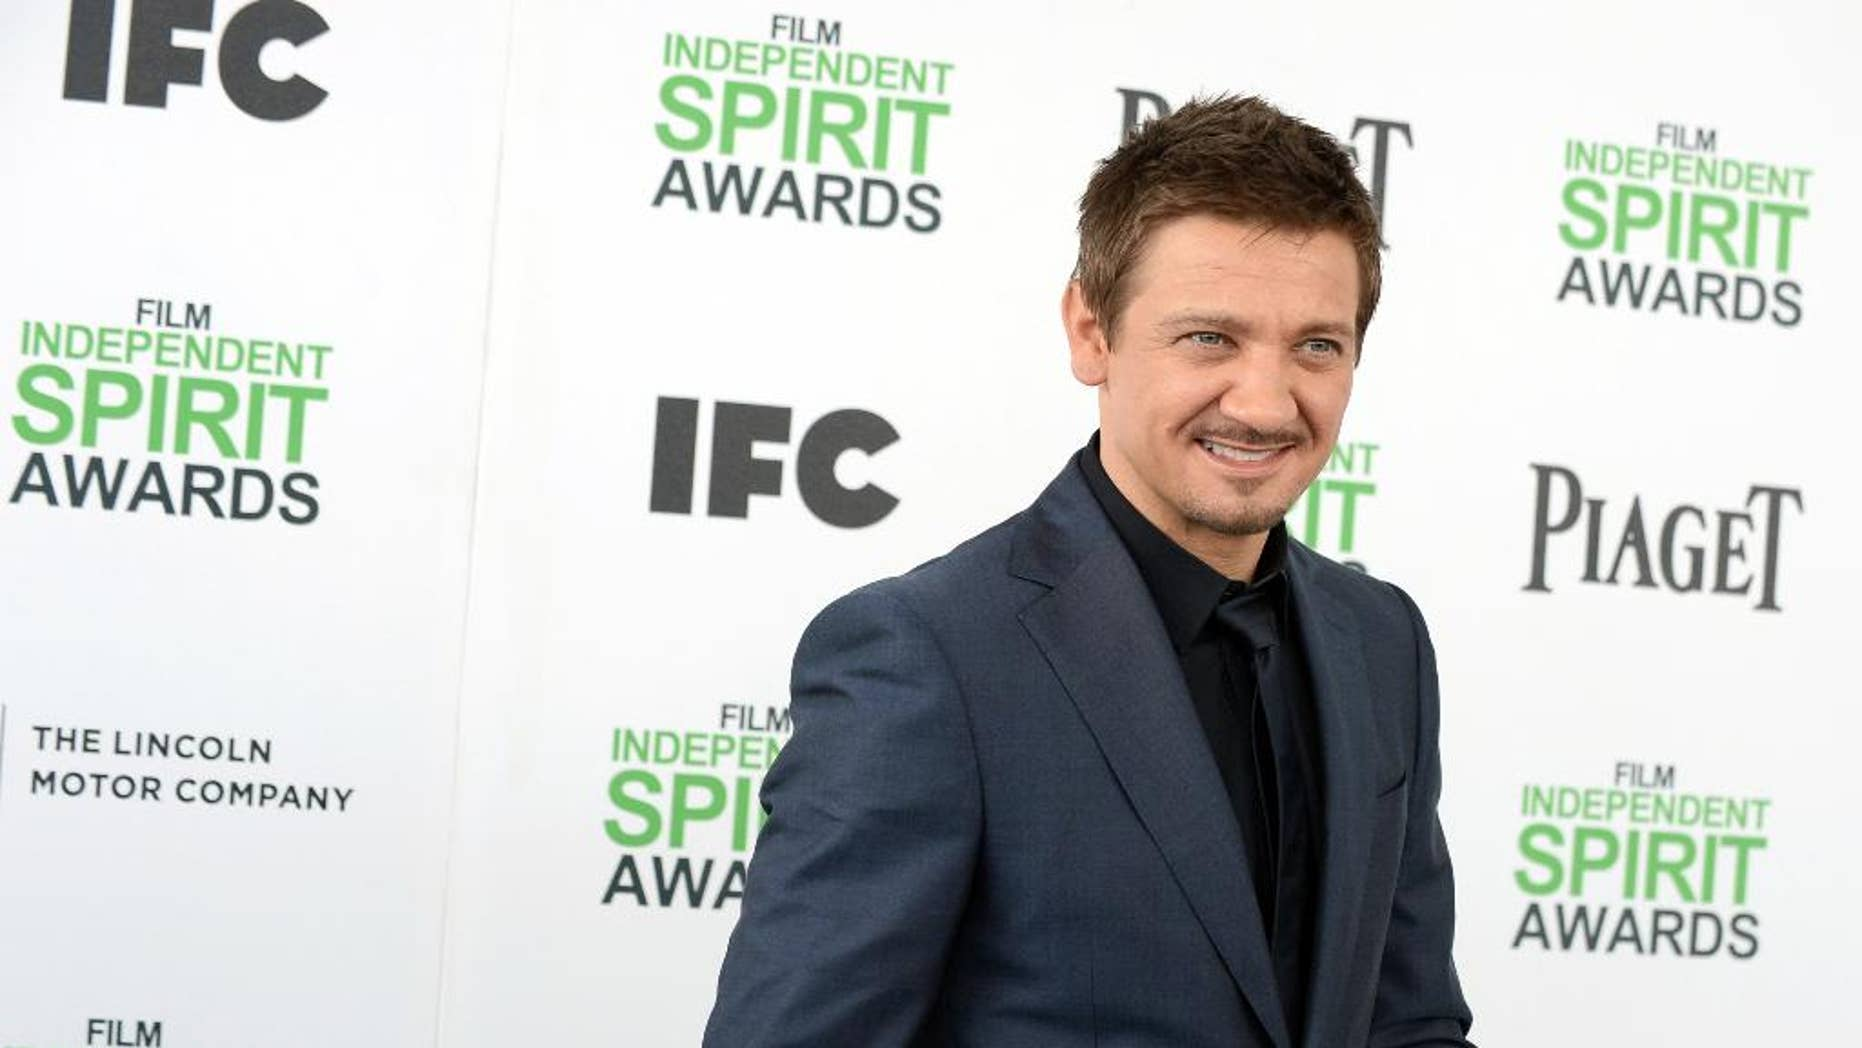 FILE - In this March 1, 2014 file photo, Jeremy Renner arrives at the 2014 Film Independent Spirit Awards, in Santa Monica, Calif.  Attorneys for Renner and his estranged wife, model Sonni Pacheco, told a Los Angeles judge on Wednesday, April 1, 2015, that the pair had settled a custody dispute over their 2-year-old daughter. Pacheco filed for divorce from the two-time Academy Award nominee in December, less than a year after their wedding. (Photo by Jordan Strauss/Invision/AP, File)